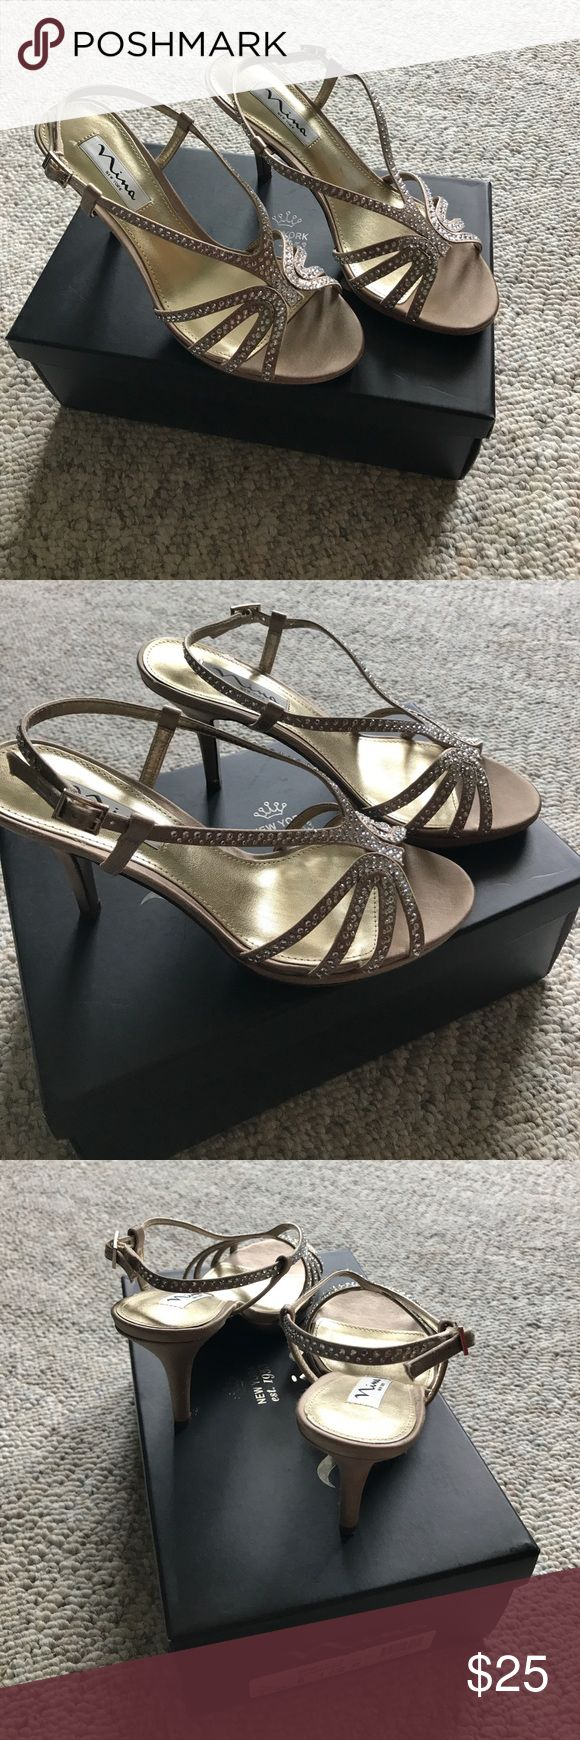 "Nina Bobbie Champagne Evening Sandals Nina Bobbie Evening Sandals feature sparkling rhinestone covered straps and a covered heel. Satin upper, Round-toe platform evening sandal with side buckle closure, 1/2"" platform, 3""  covered heel, man-made sole. Color: champagne Nina Shoes Heels"